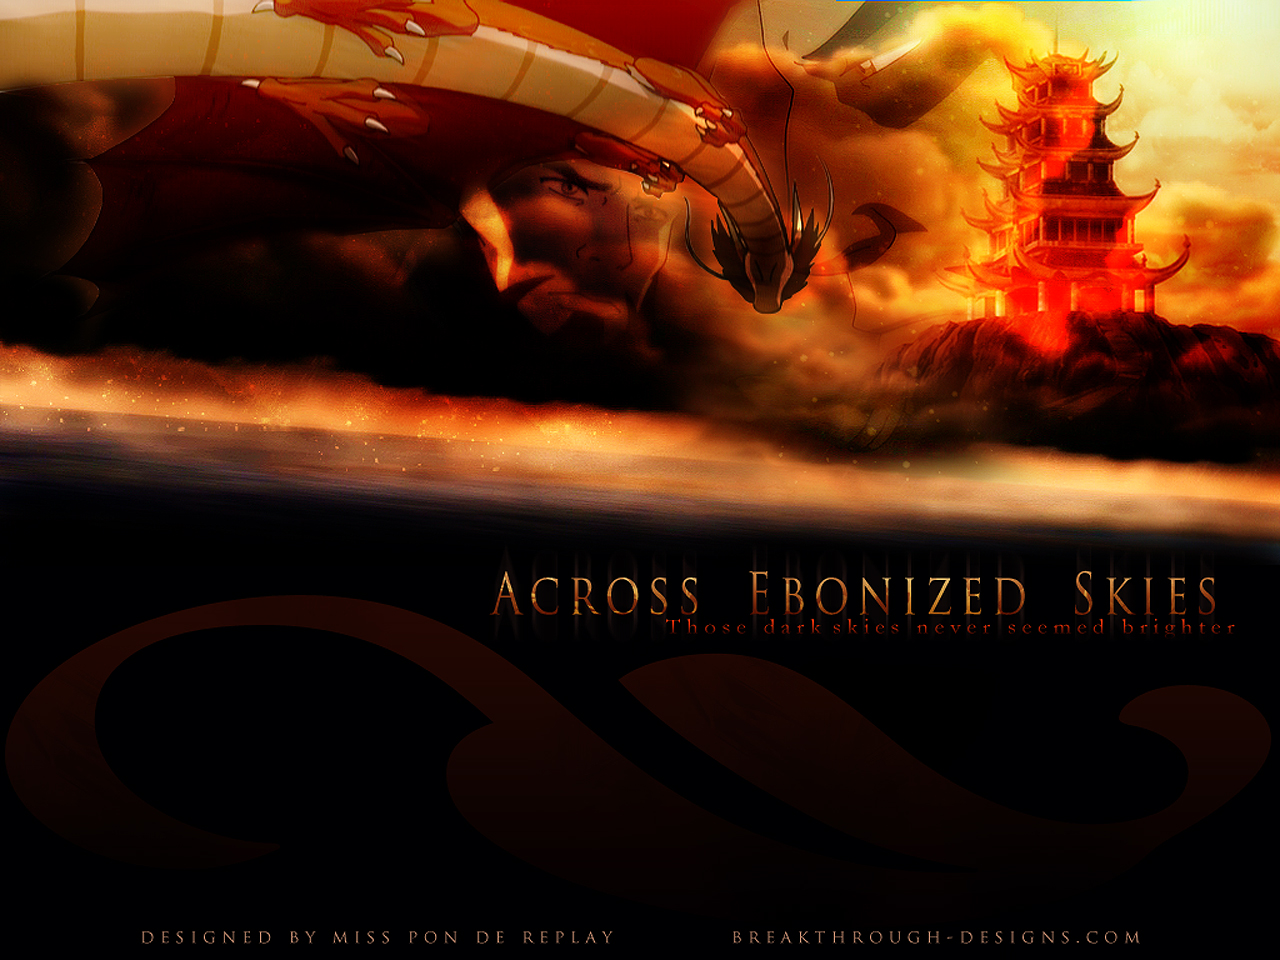 Designs Avatar The Last Airbender Wallpapers Subpage Short 1280x960